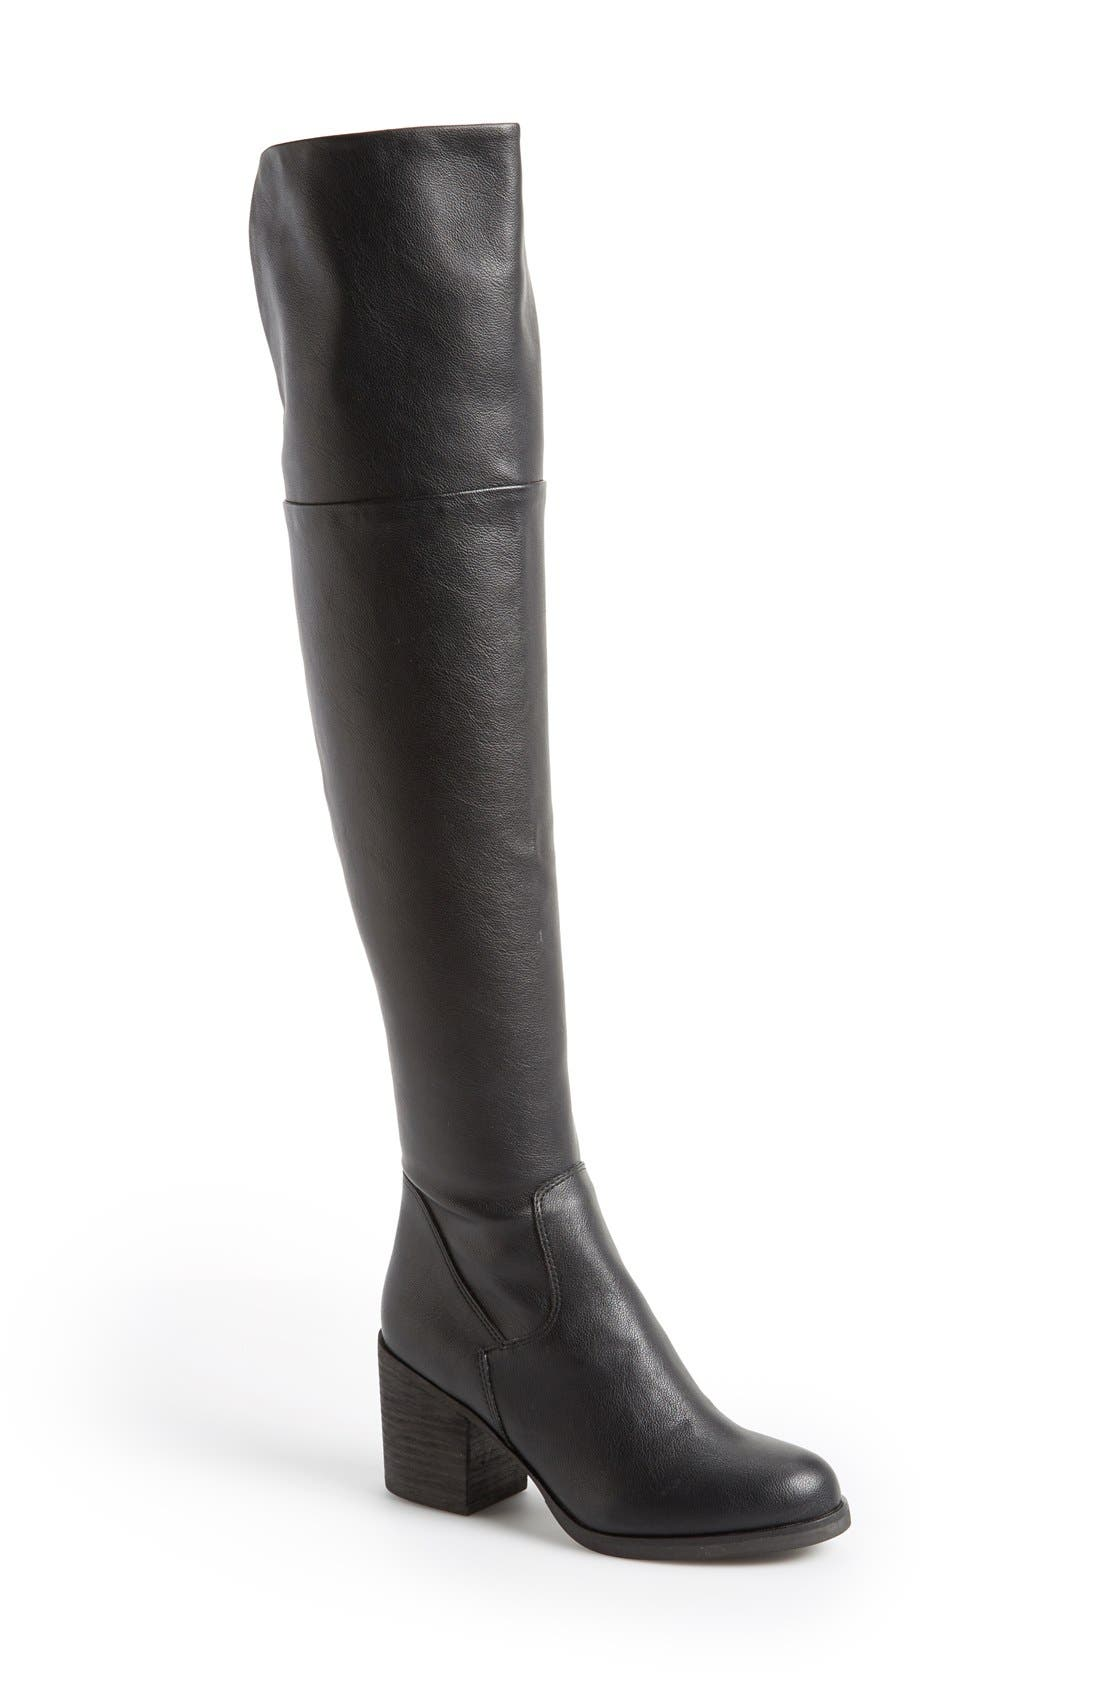 Alternate Image 1 Selected - Steve Madden 'Odyssey' Over the Knee Boot (Women)